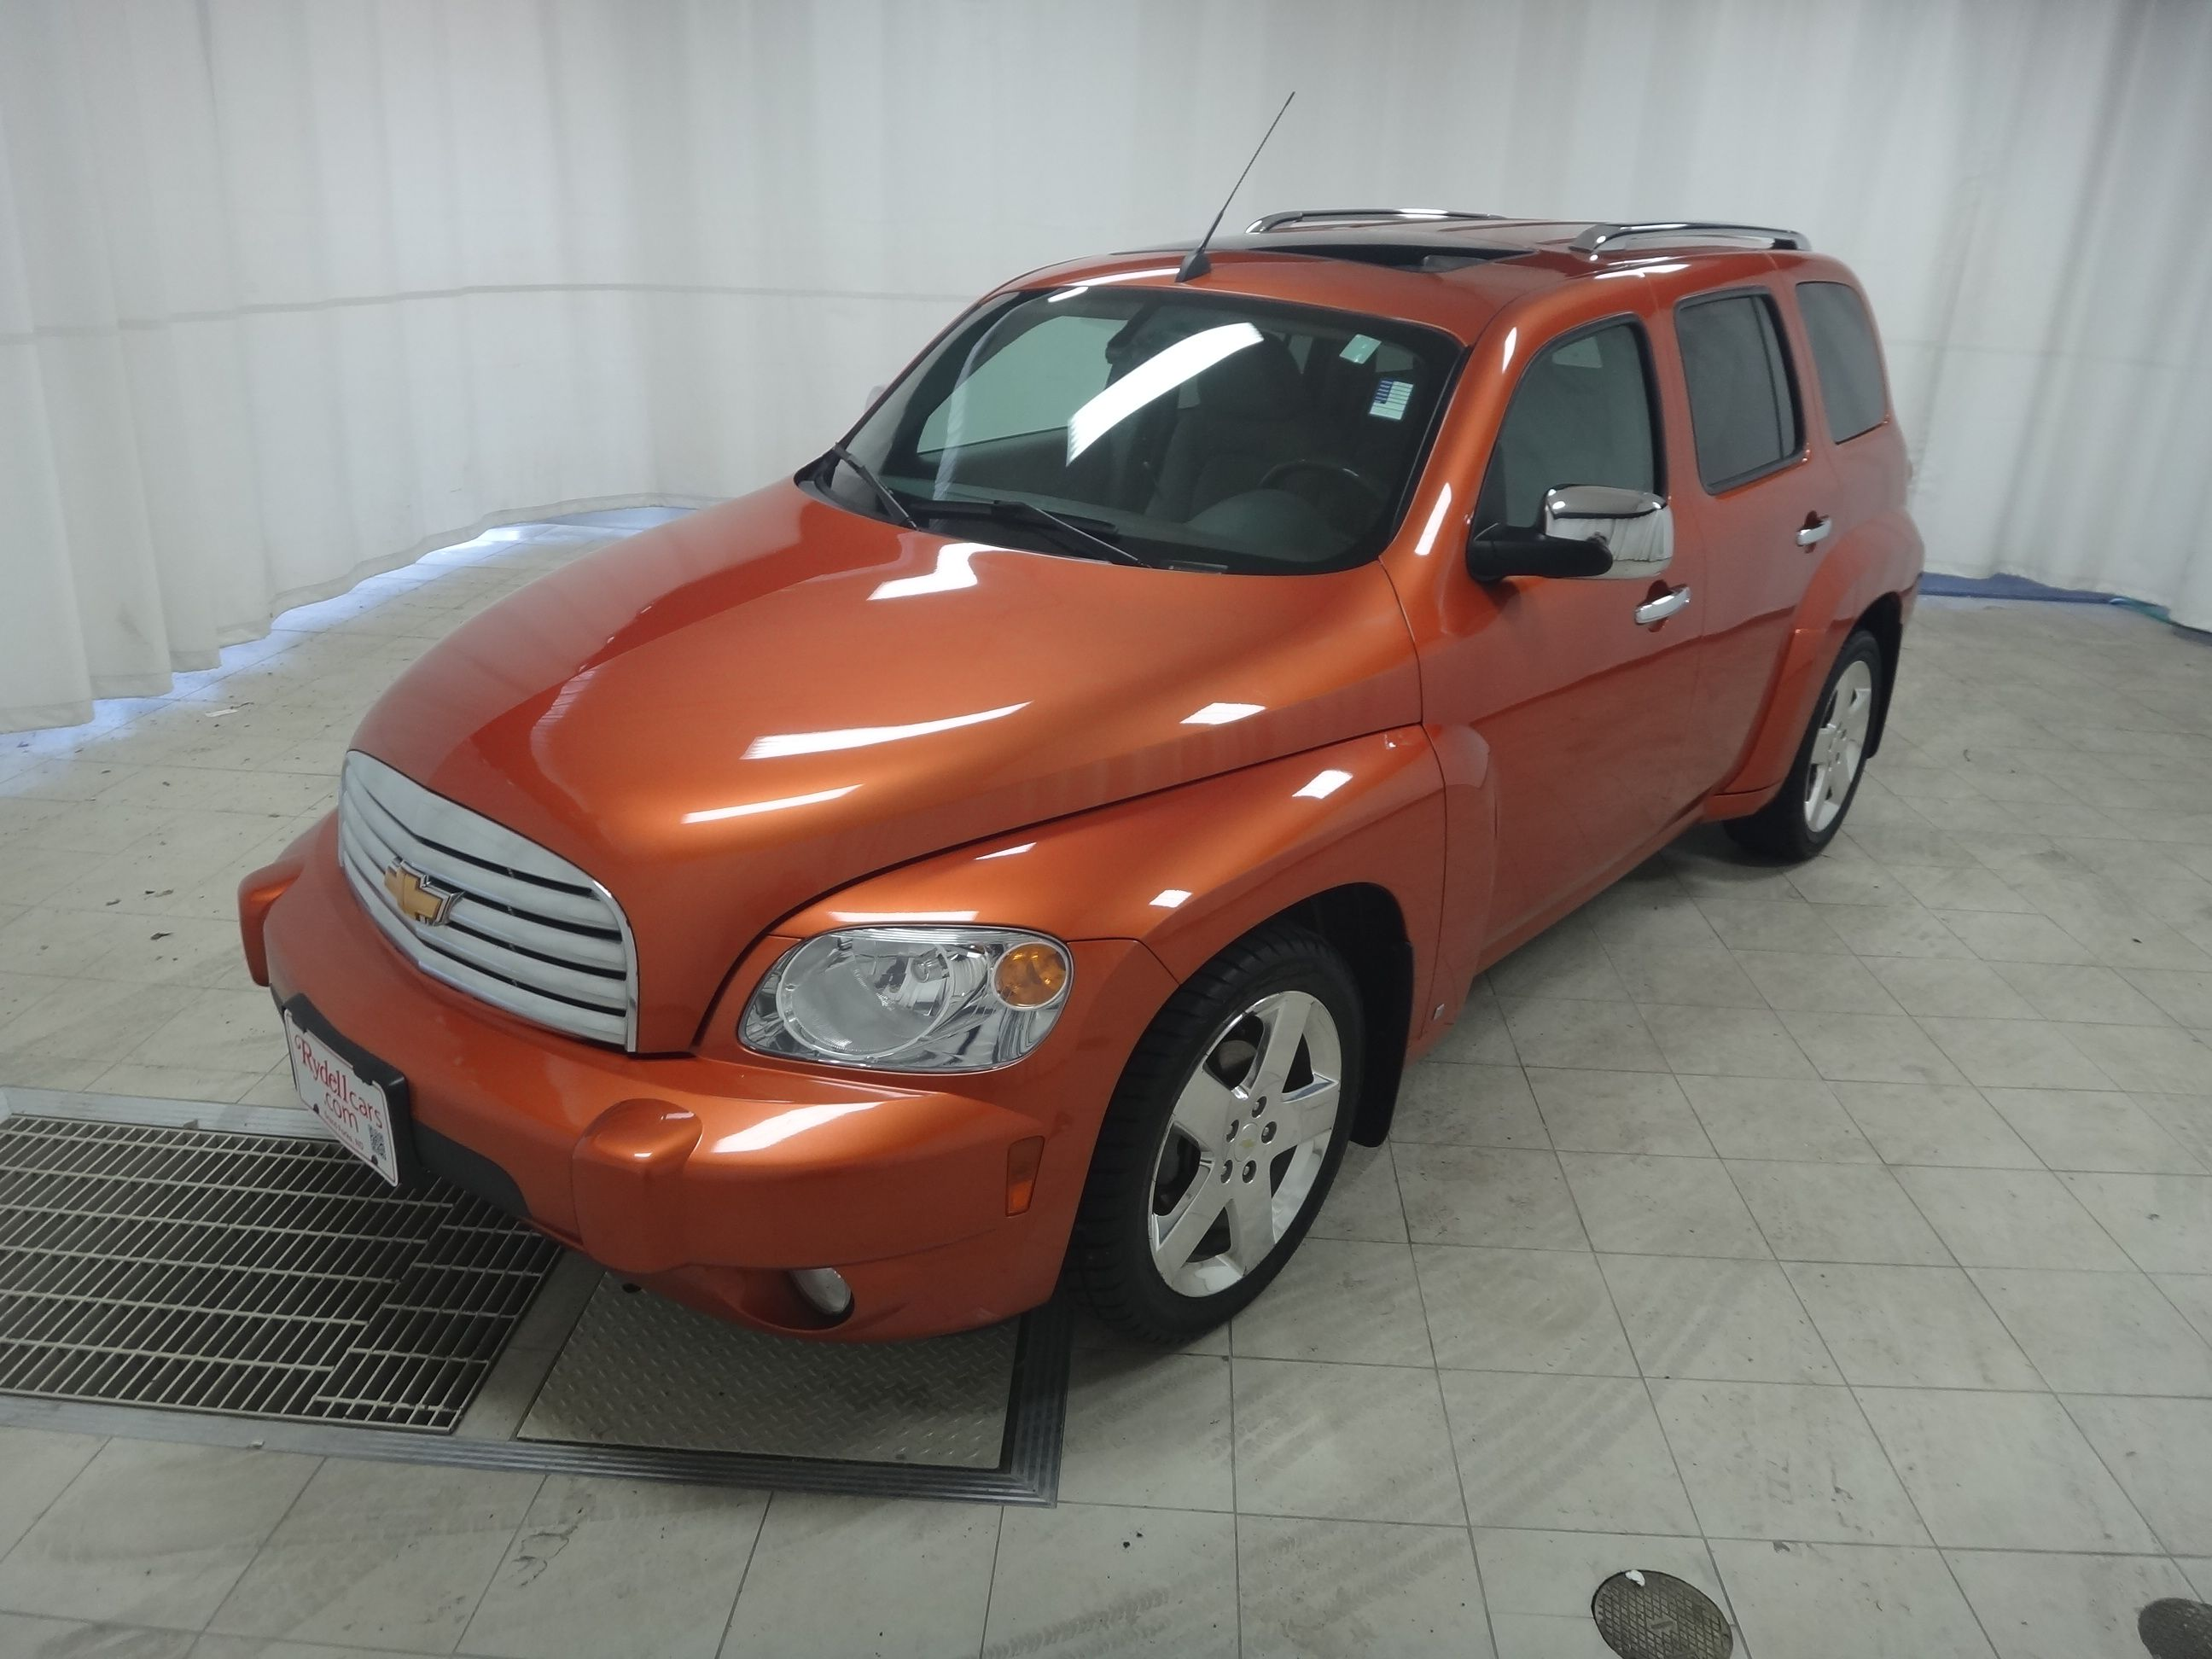 Used 2006 Chevrolet Hhr Lt For Sale Rydell Wouldn T Mind This Car Chevrolet Car Grand Forks